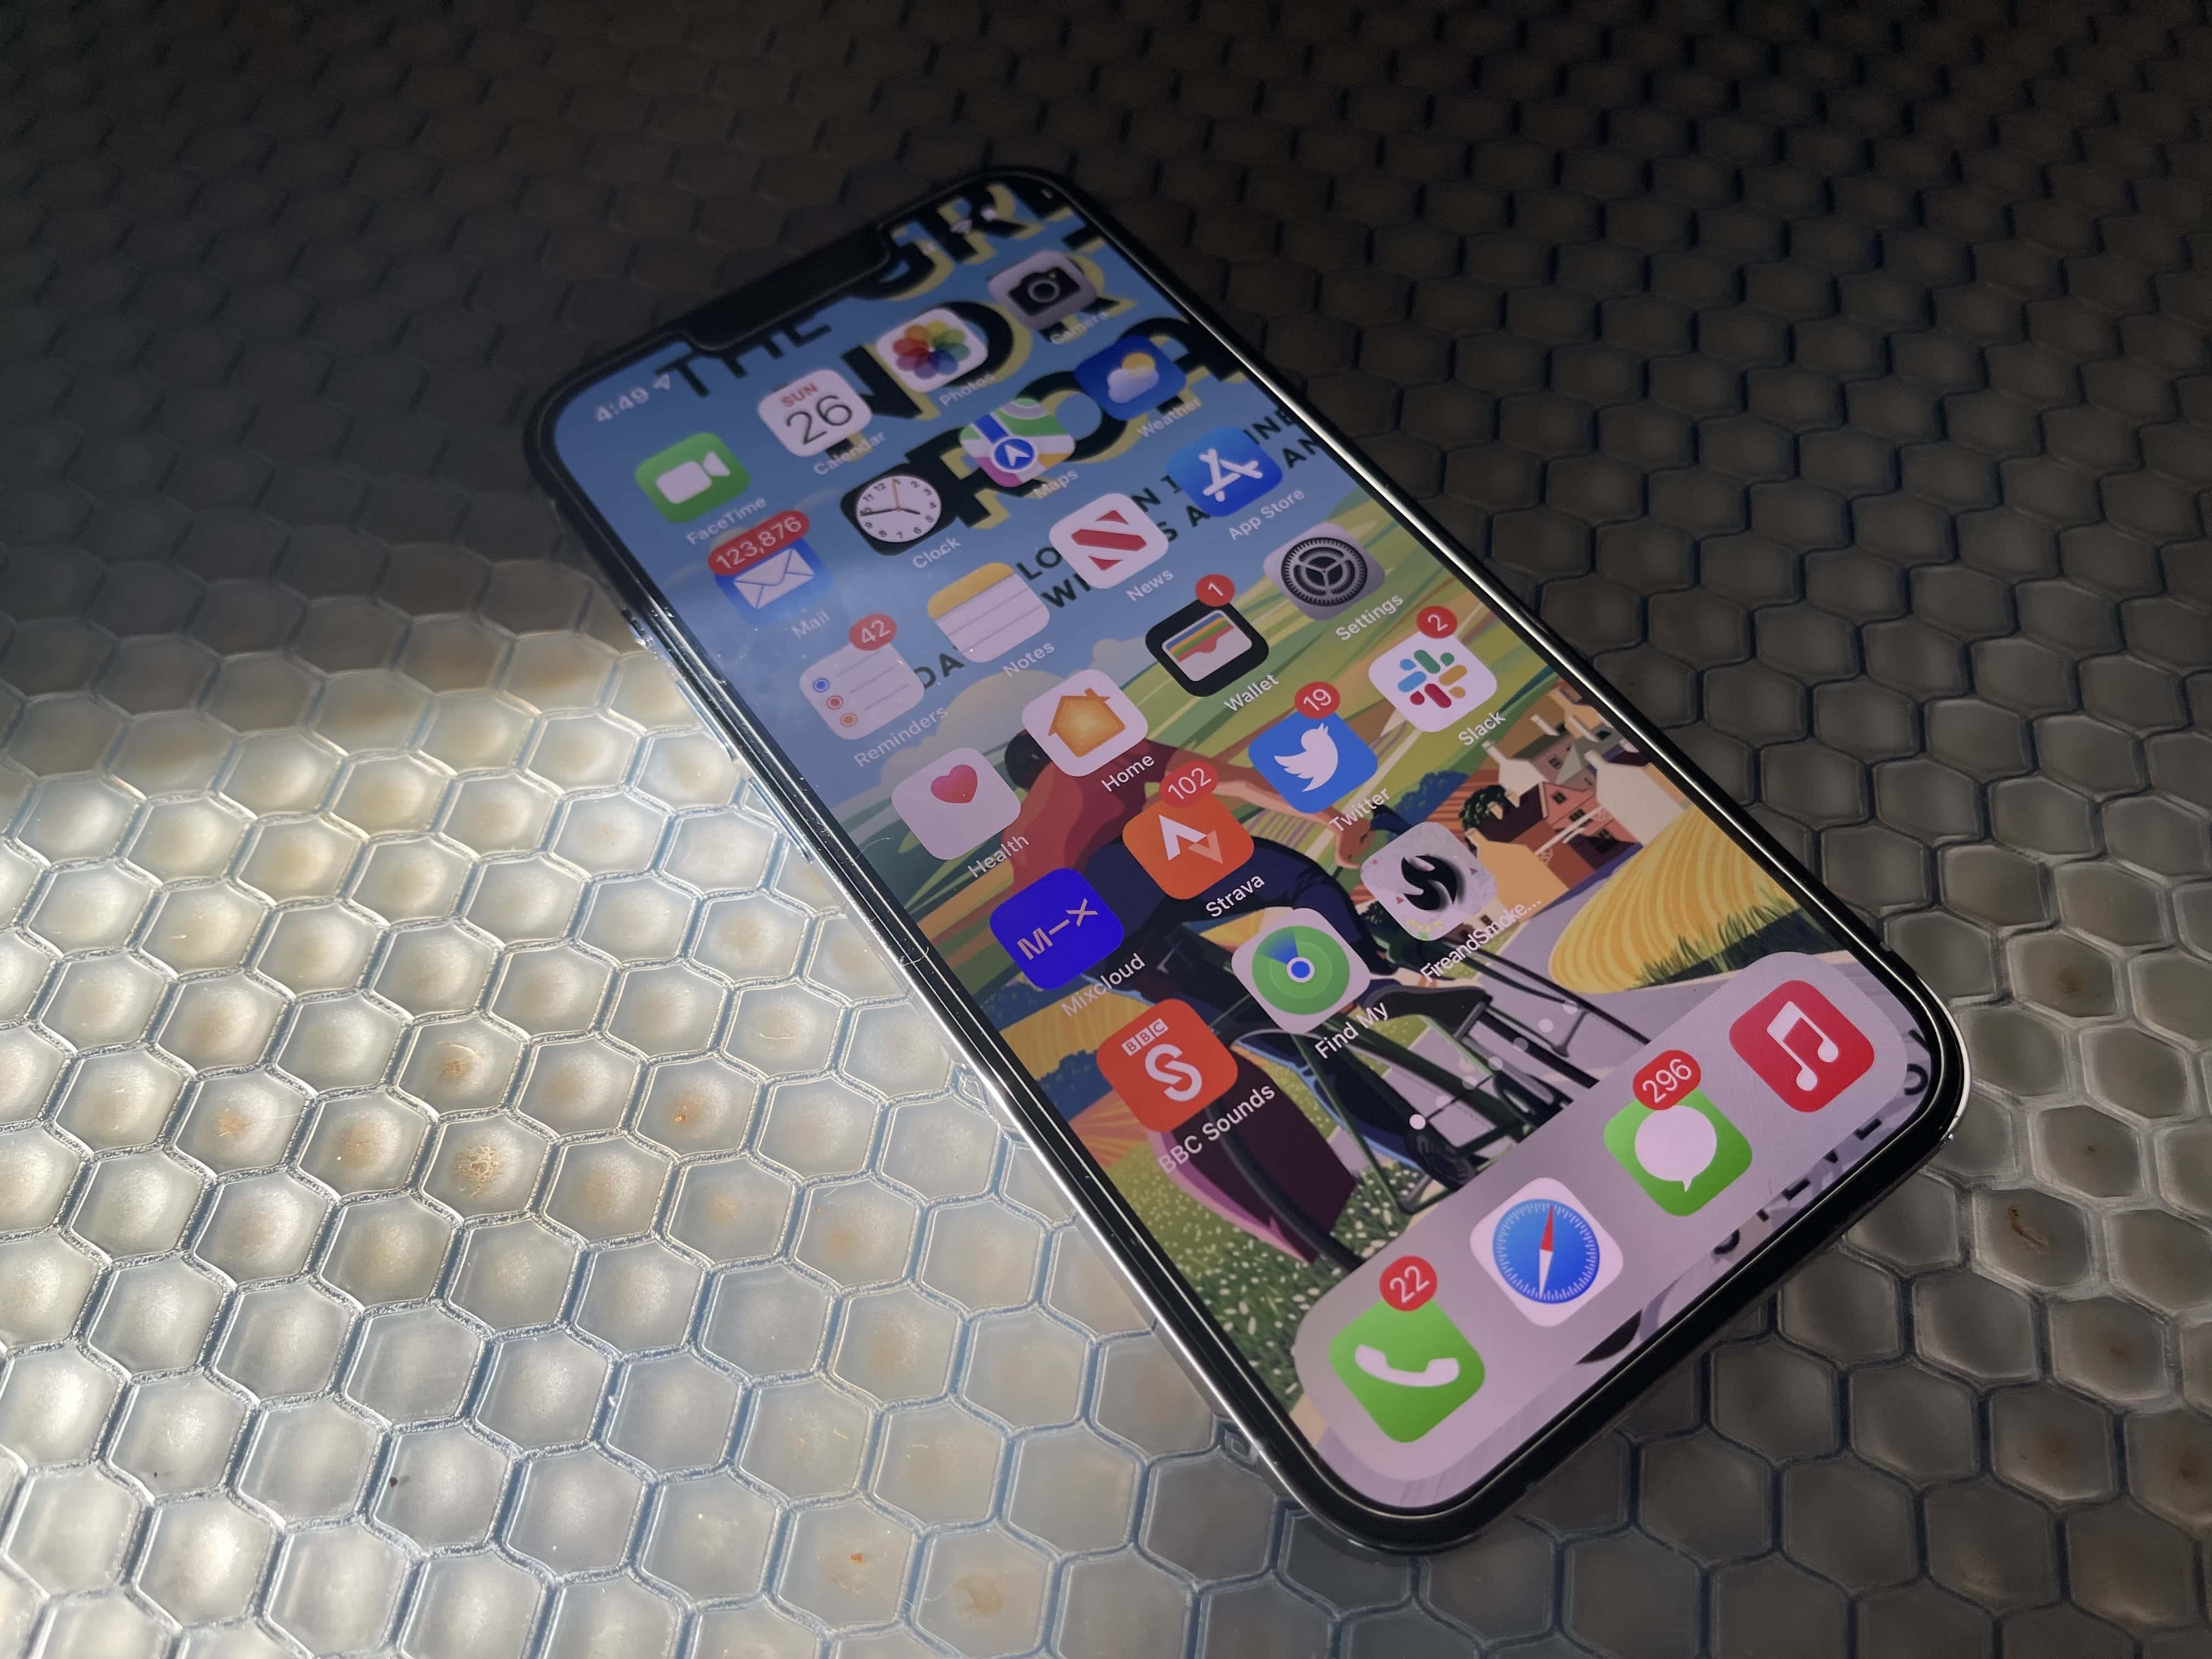 The iPhone 13 Pro's display is simply spectacular. It's gorgeous. It's great. I can't bear to look at lesser screens now